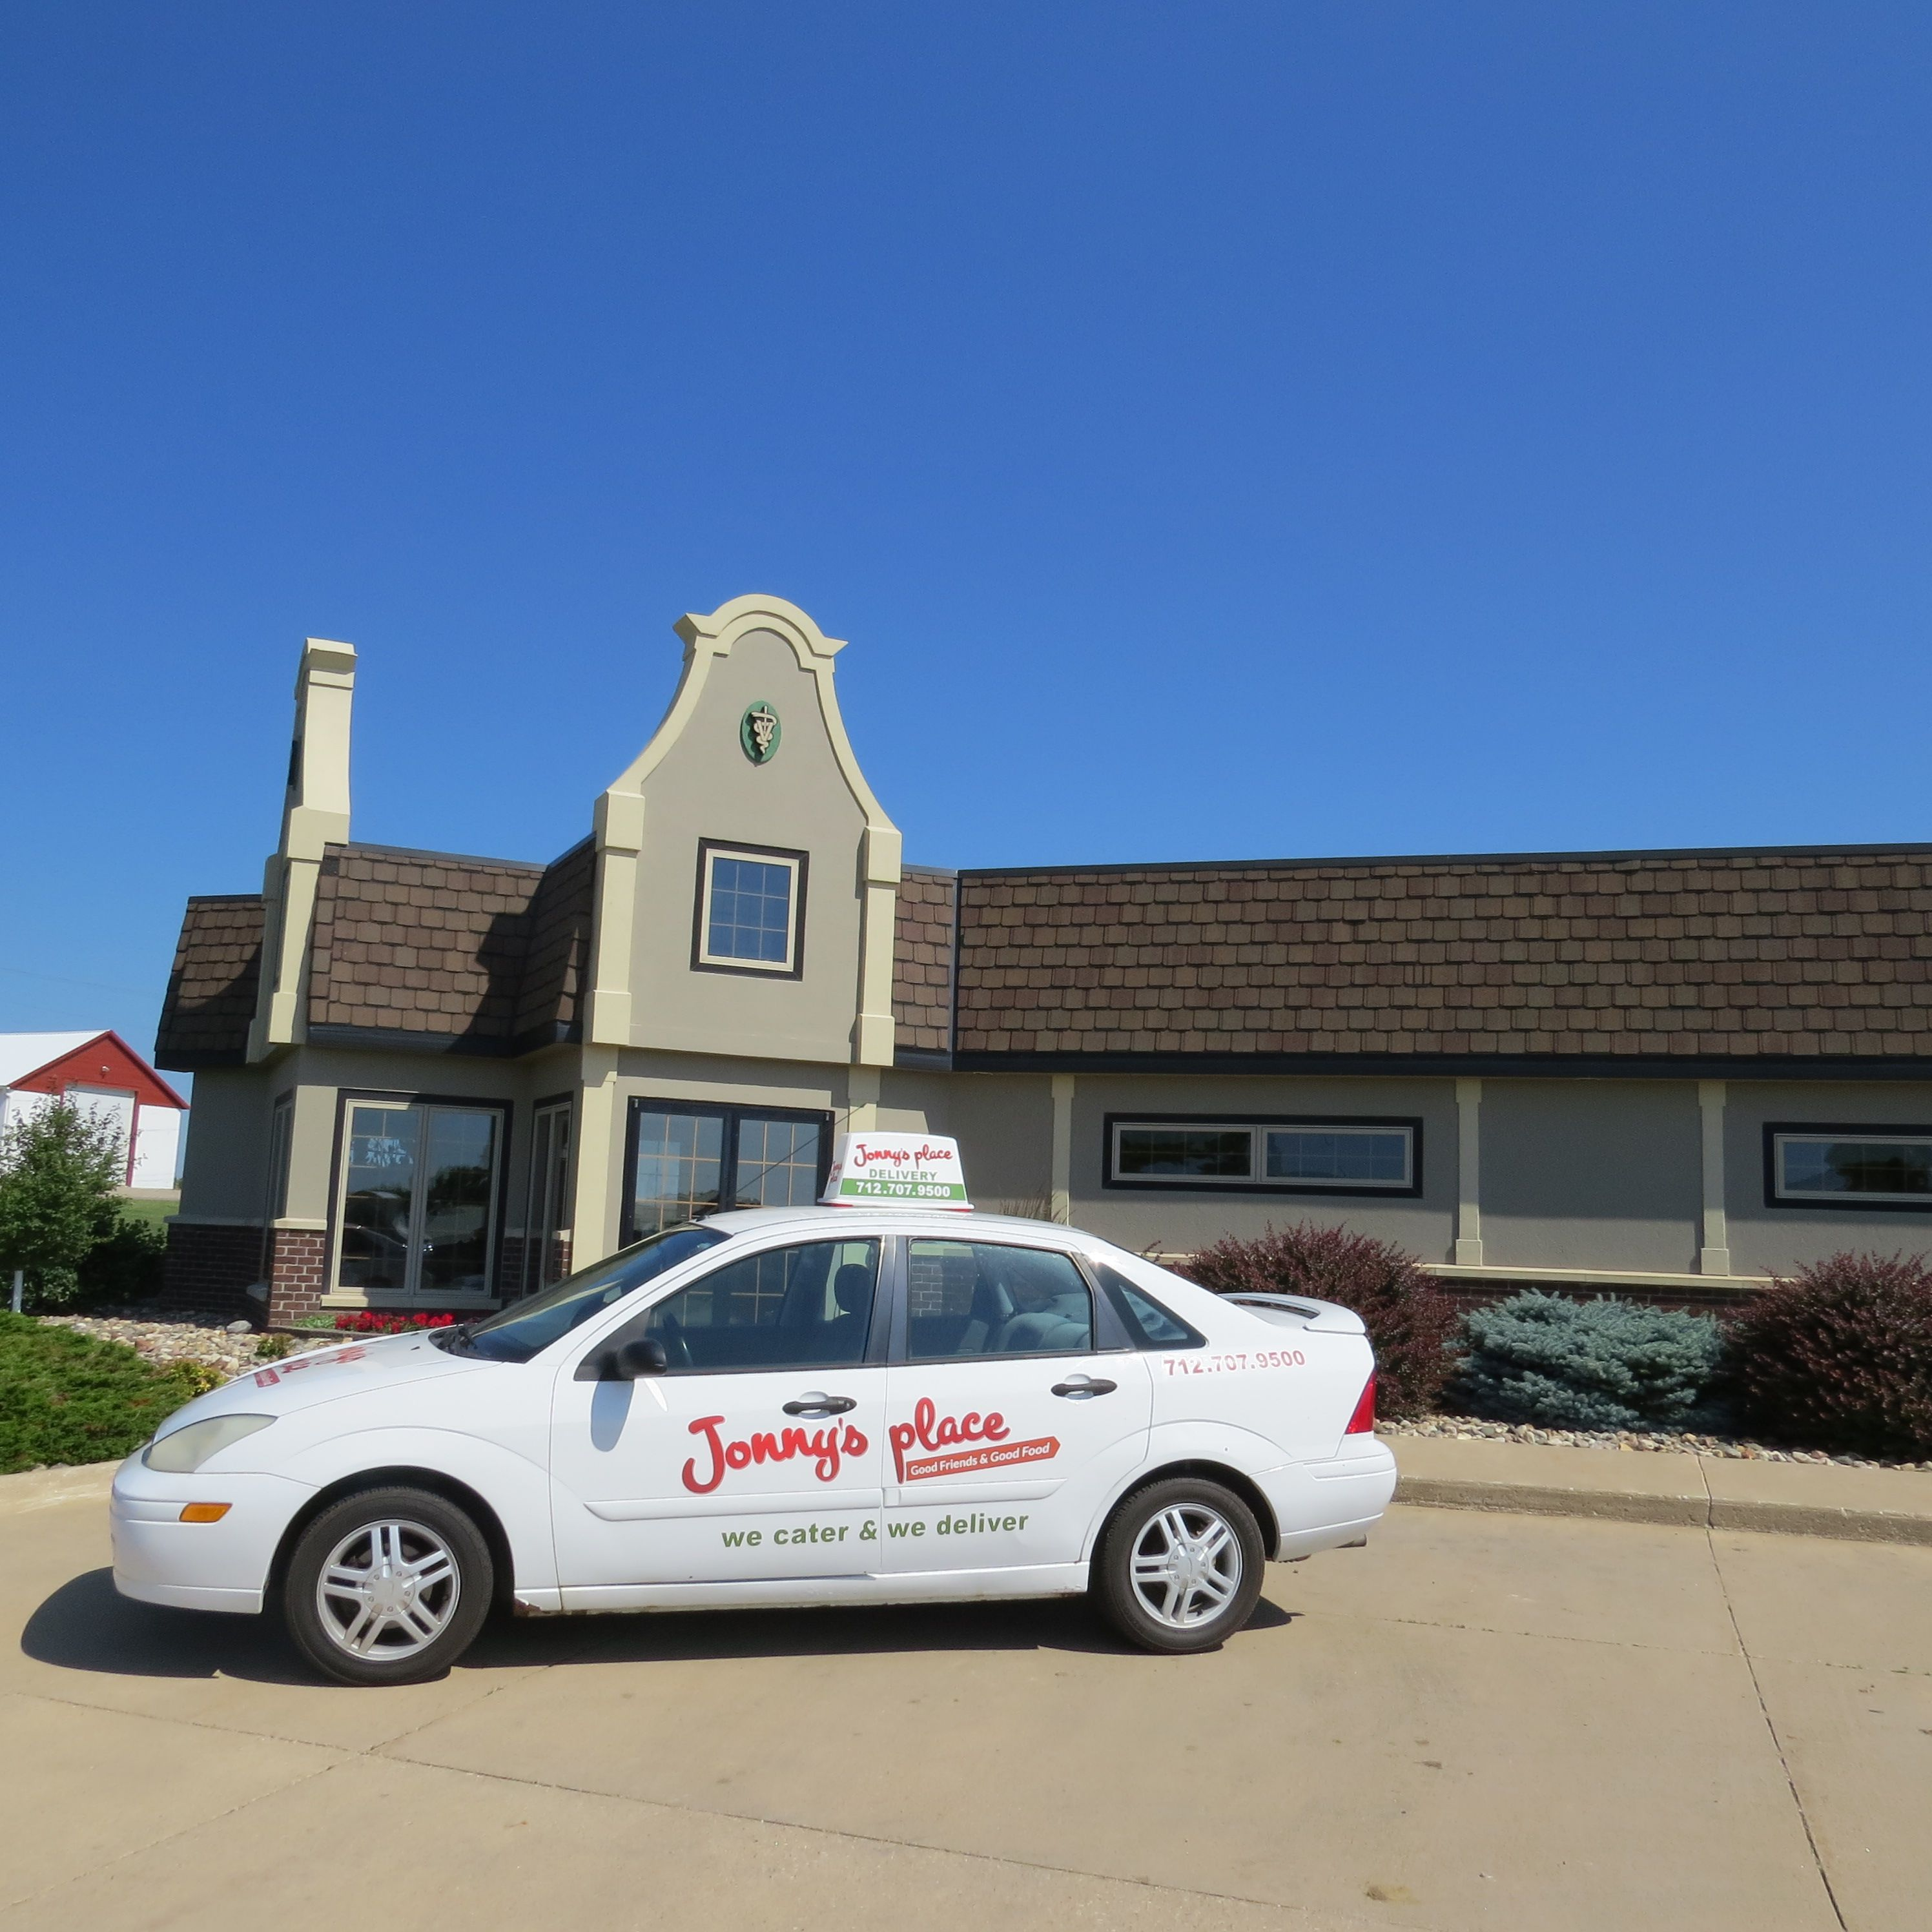 Orange City Veterinary Clinic Building Iowa Jonny's Place Car